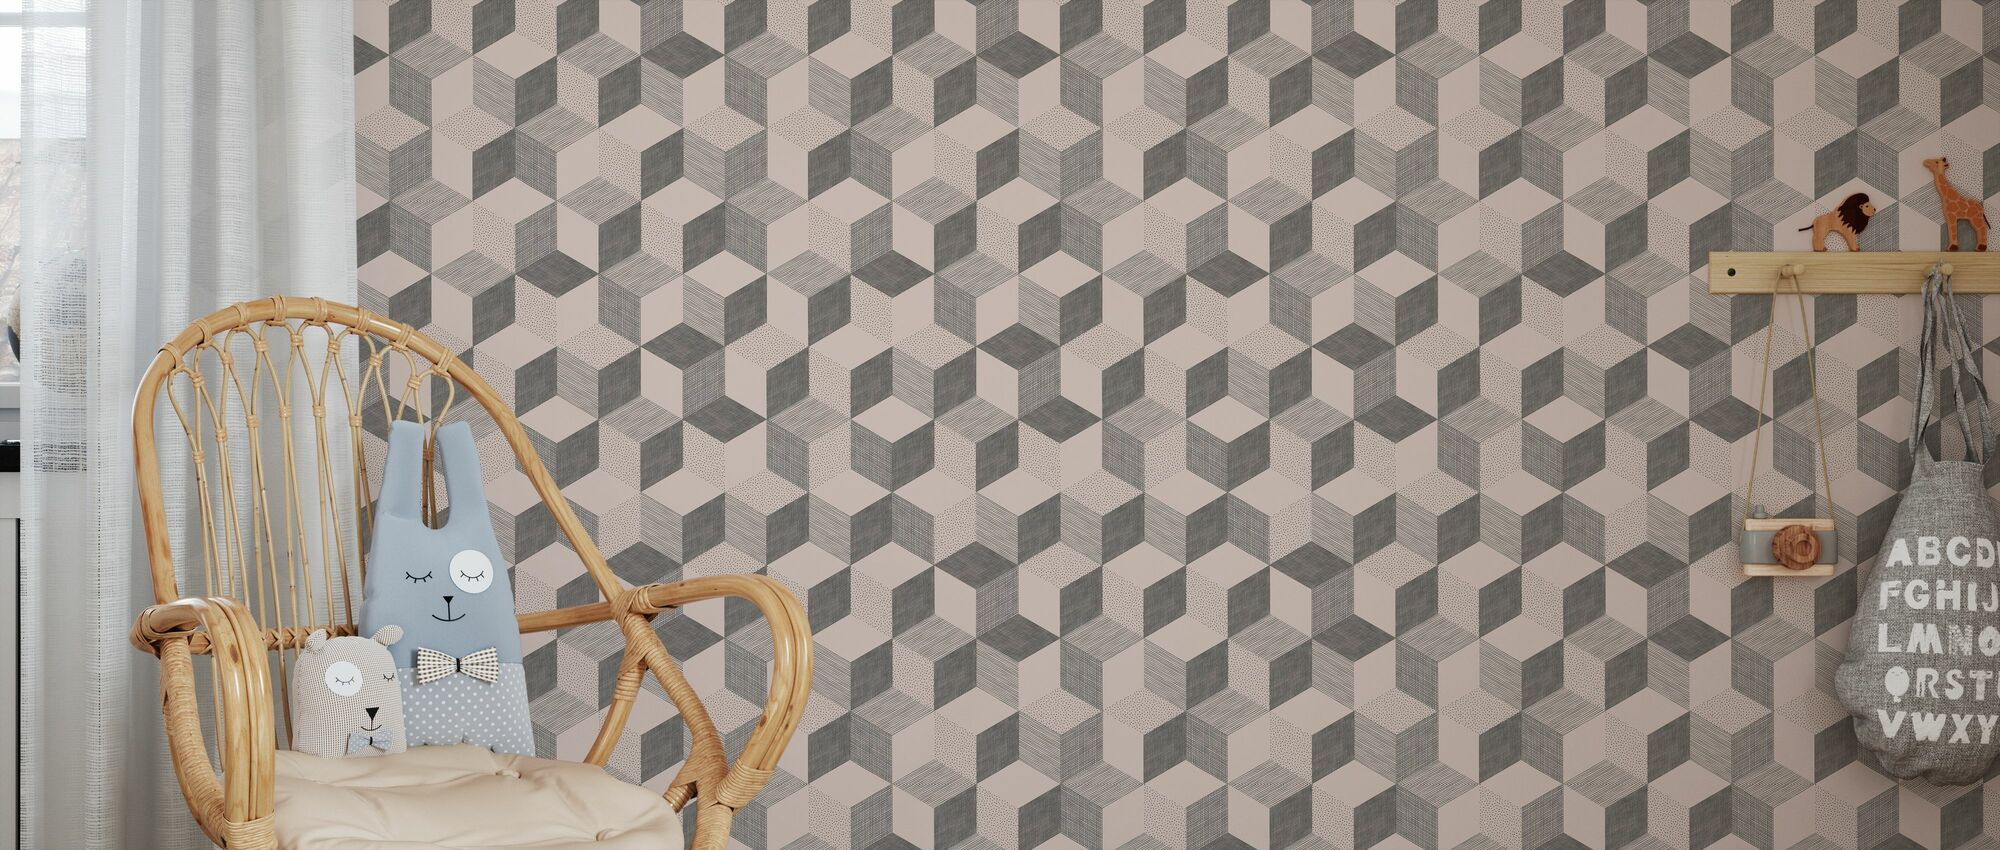 Hexagon Nude - Wallpaper - Kids Room